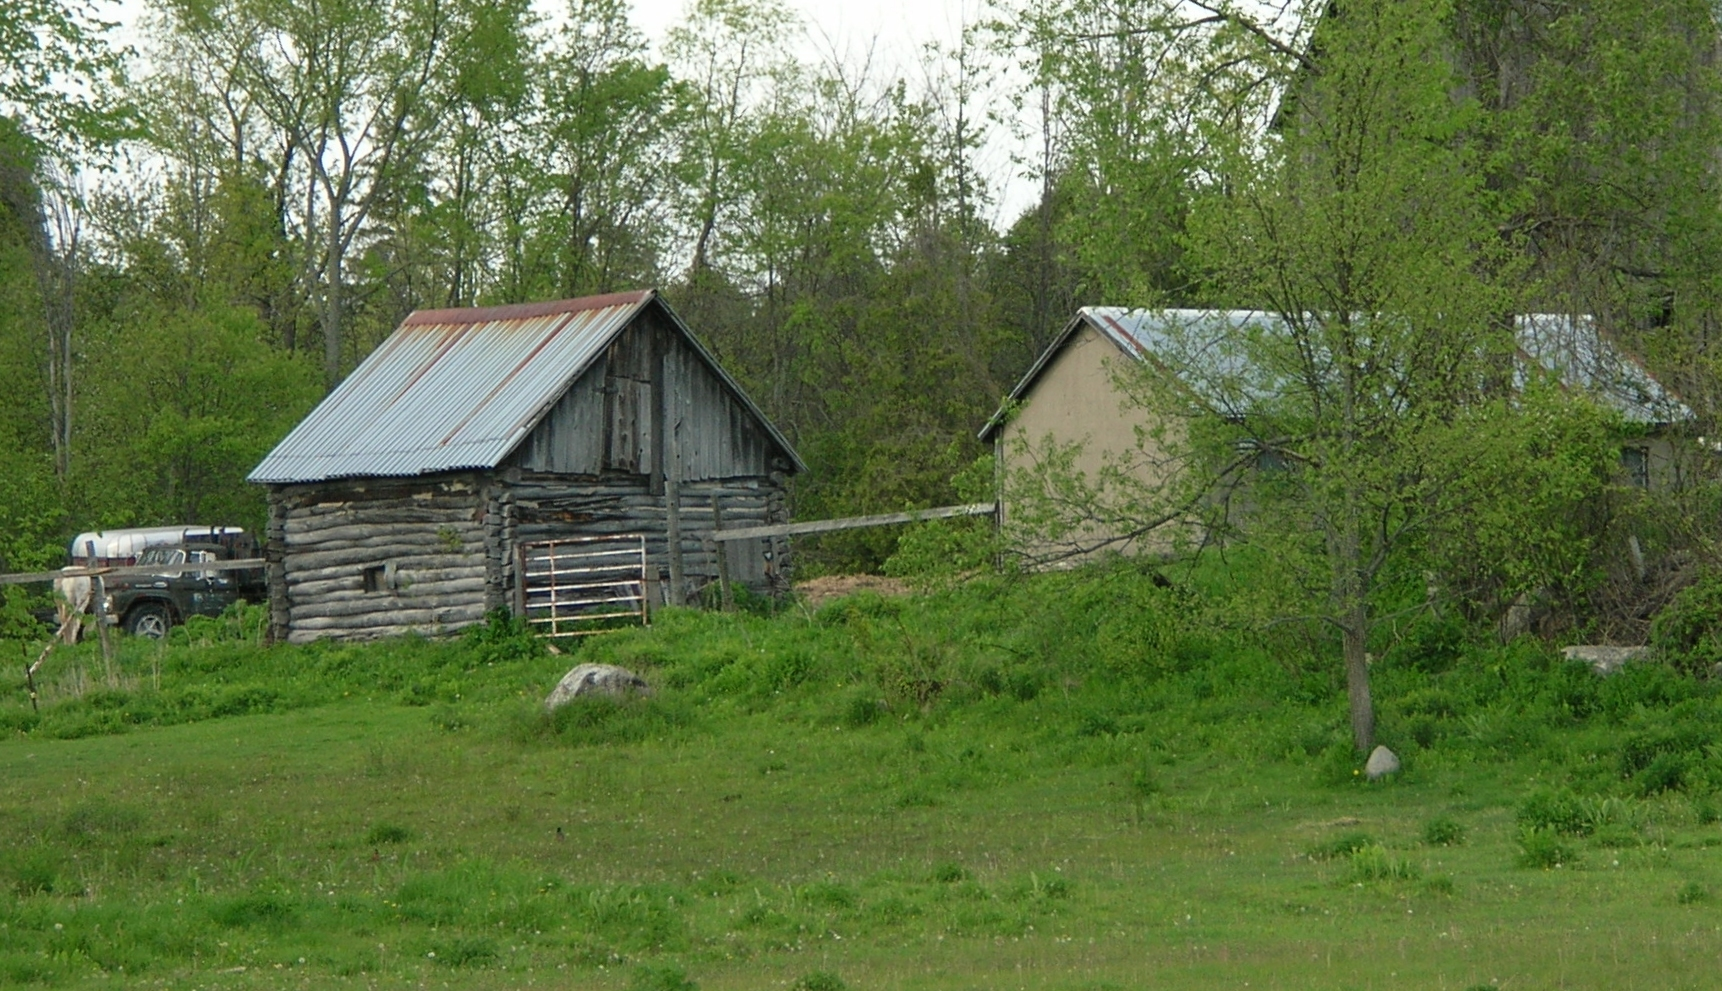 Old log out building, possibly old pigsty as seen from the Marmora KOA, 138 KOA Campground Road from May 2006 Sent by Ronald Barrons